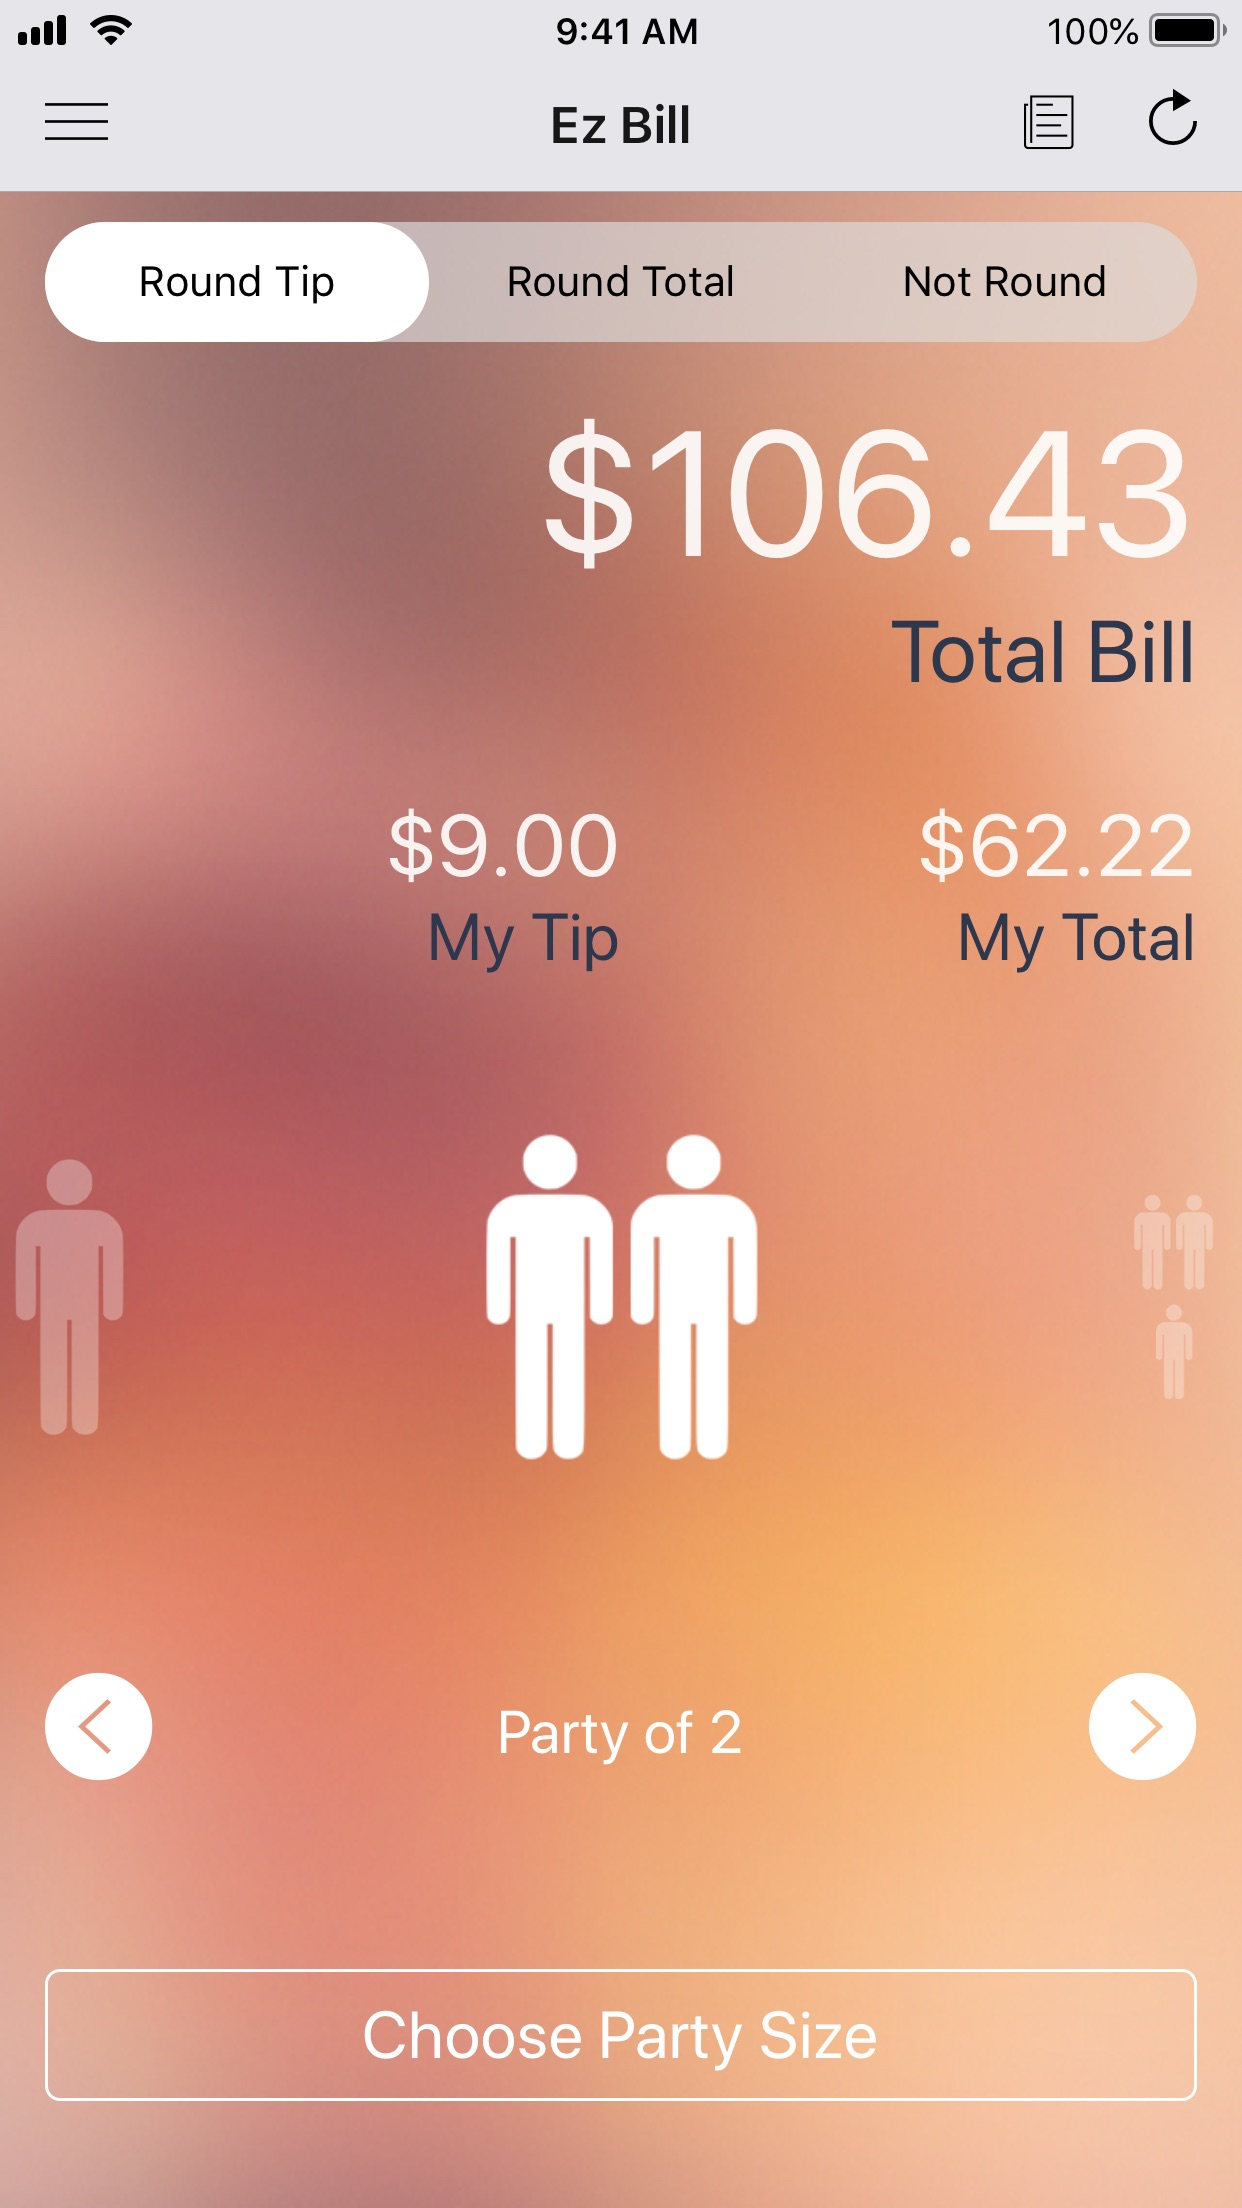 Ez Bill - Tip Calculator Screenshot